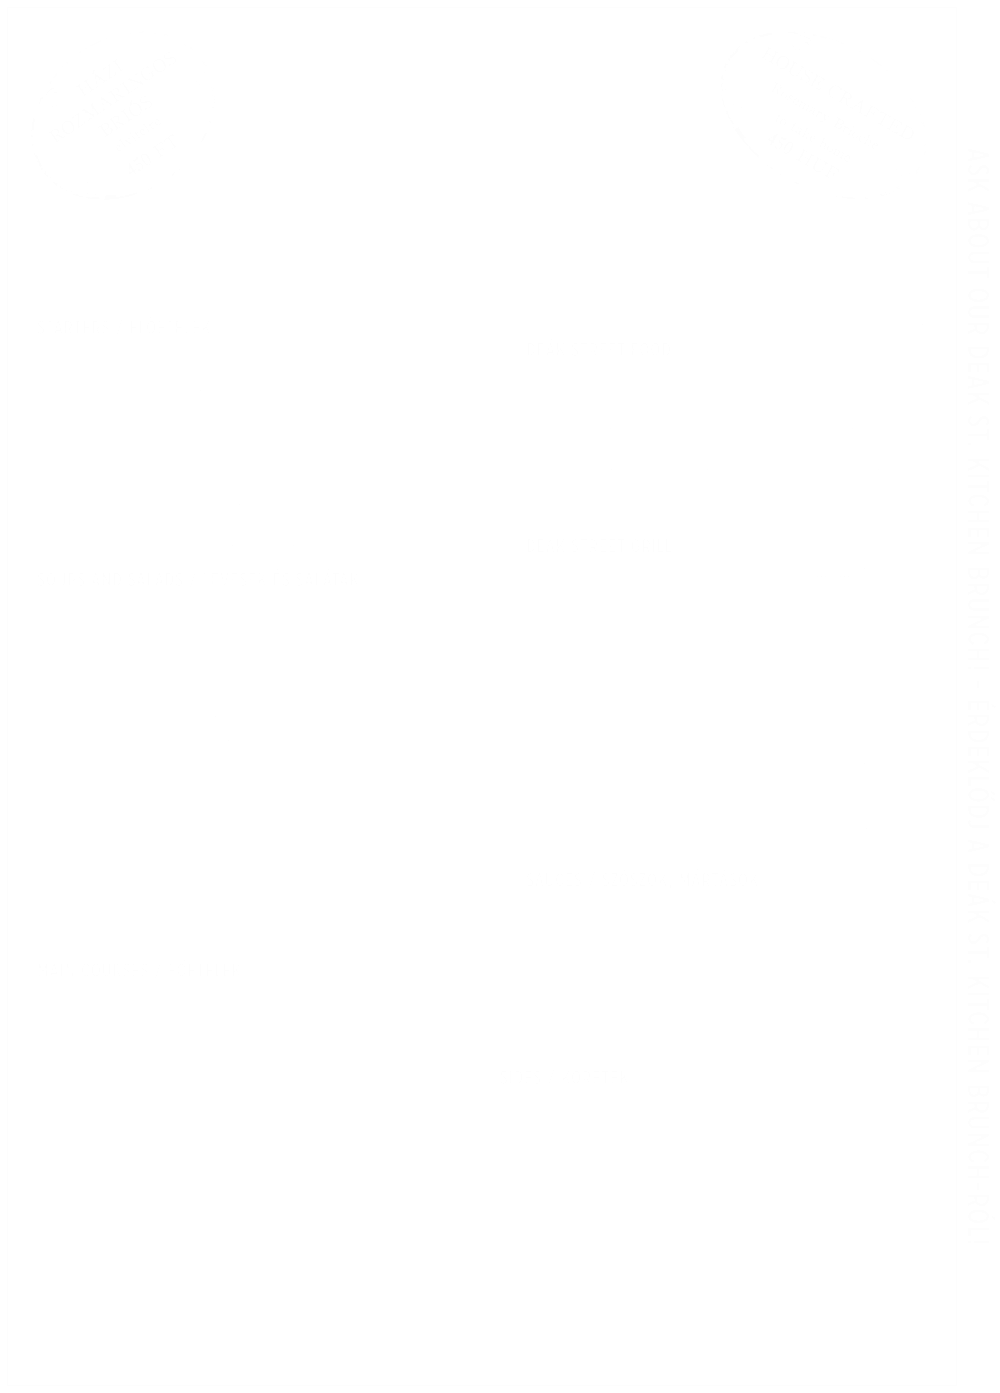 DeákSt Kitchen Food Menu Winter 2017 10.png